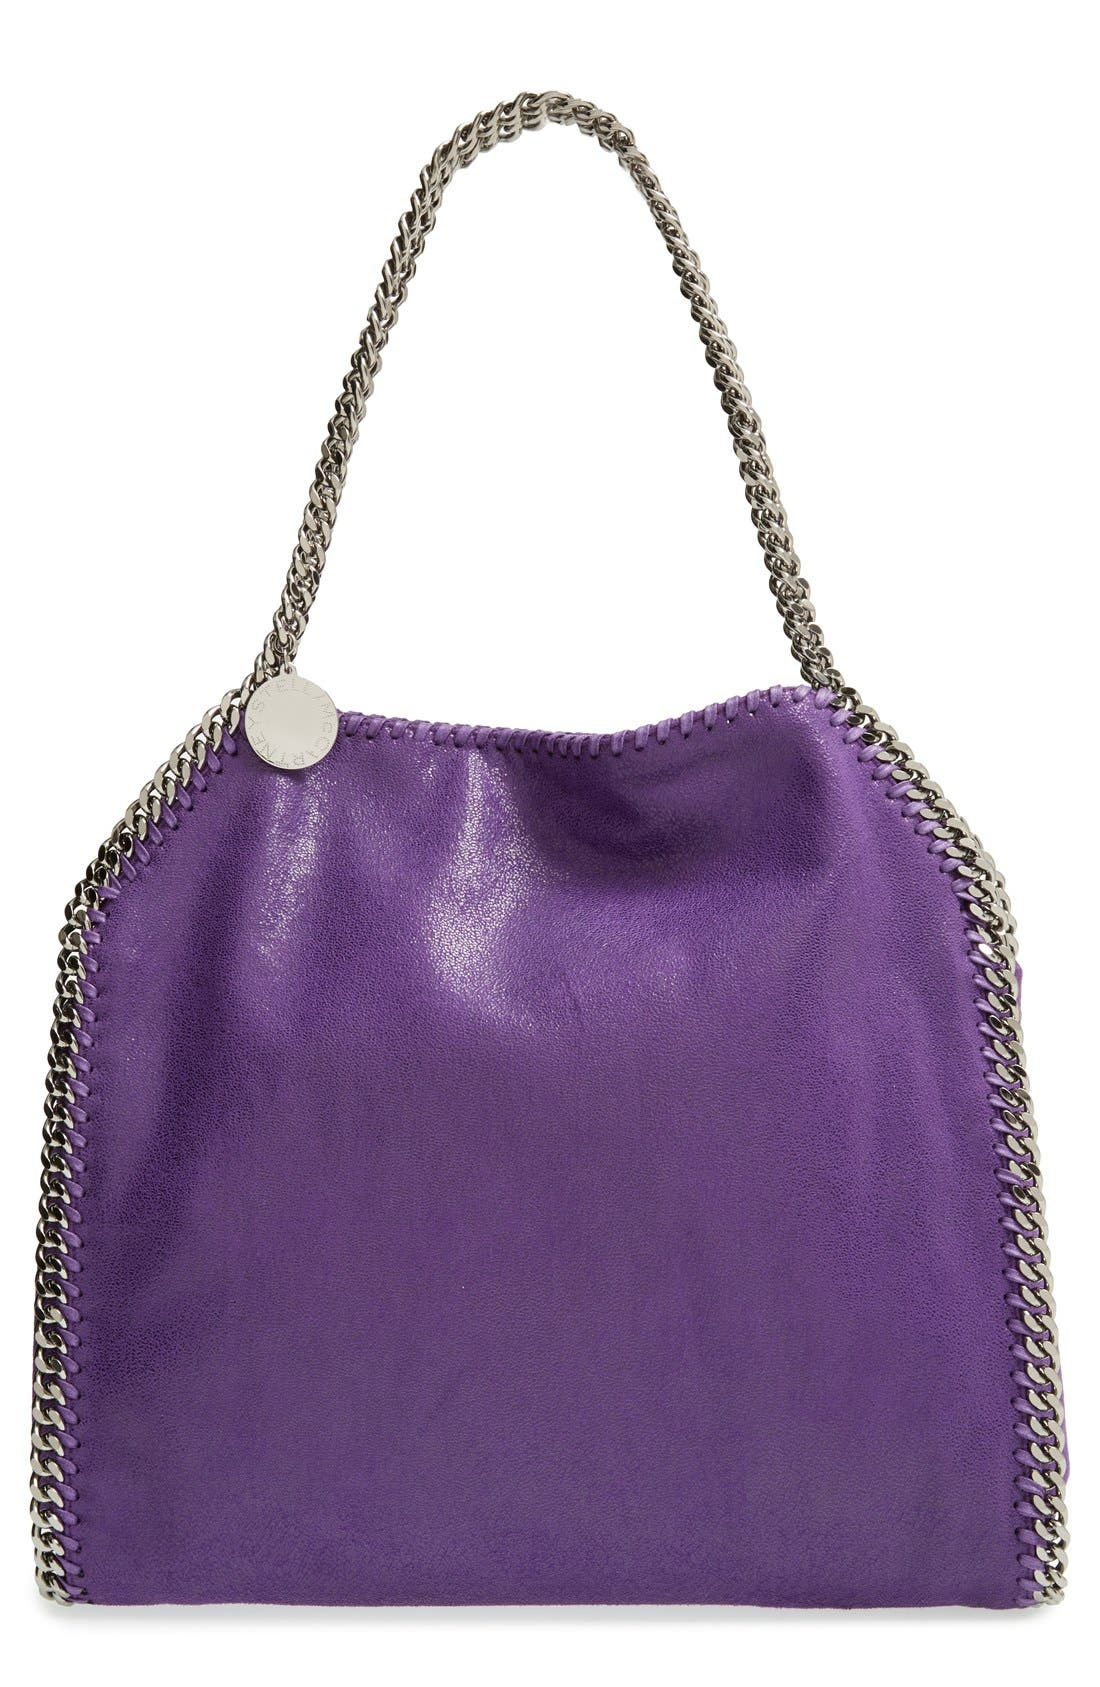 Alternate Image 1 Selected - Stella McCartney 'Small Falabella - Shaggy Deer' Faux Leather Tote